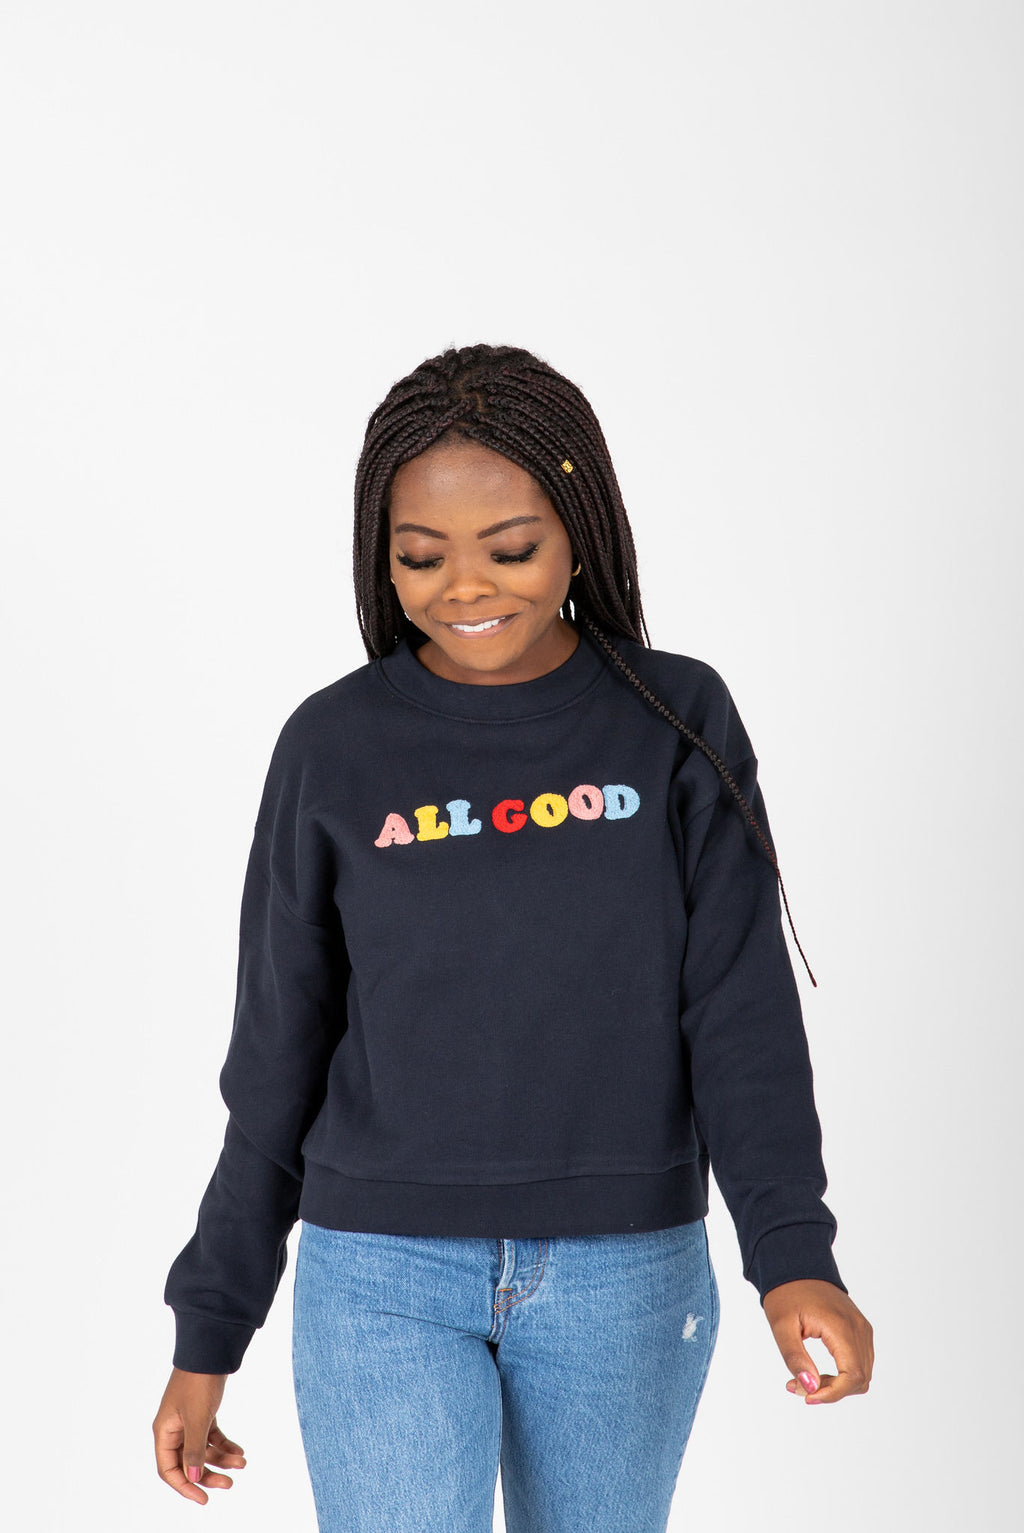 Levi's: Diana Crewneck Sweatshirt in All Good, studio shoot; front view